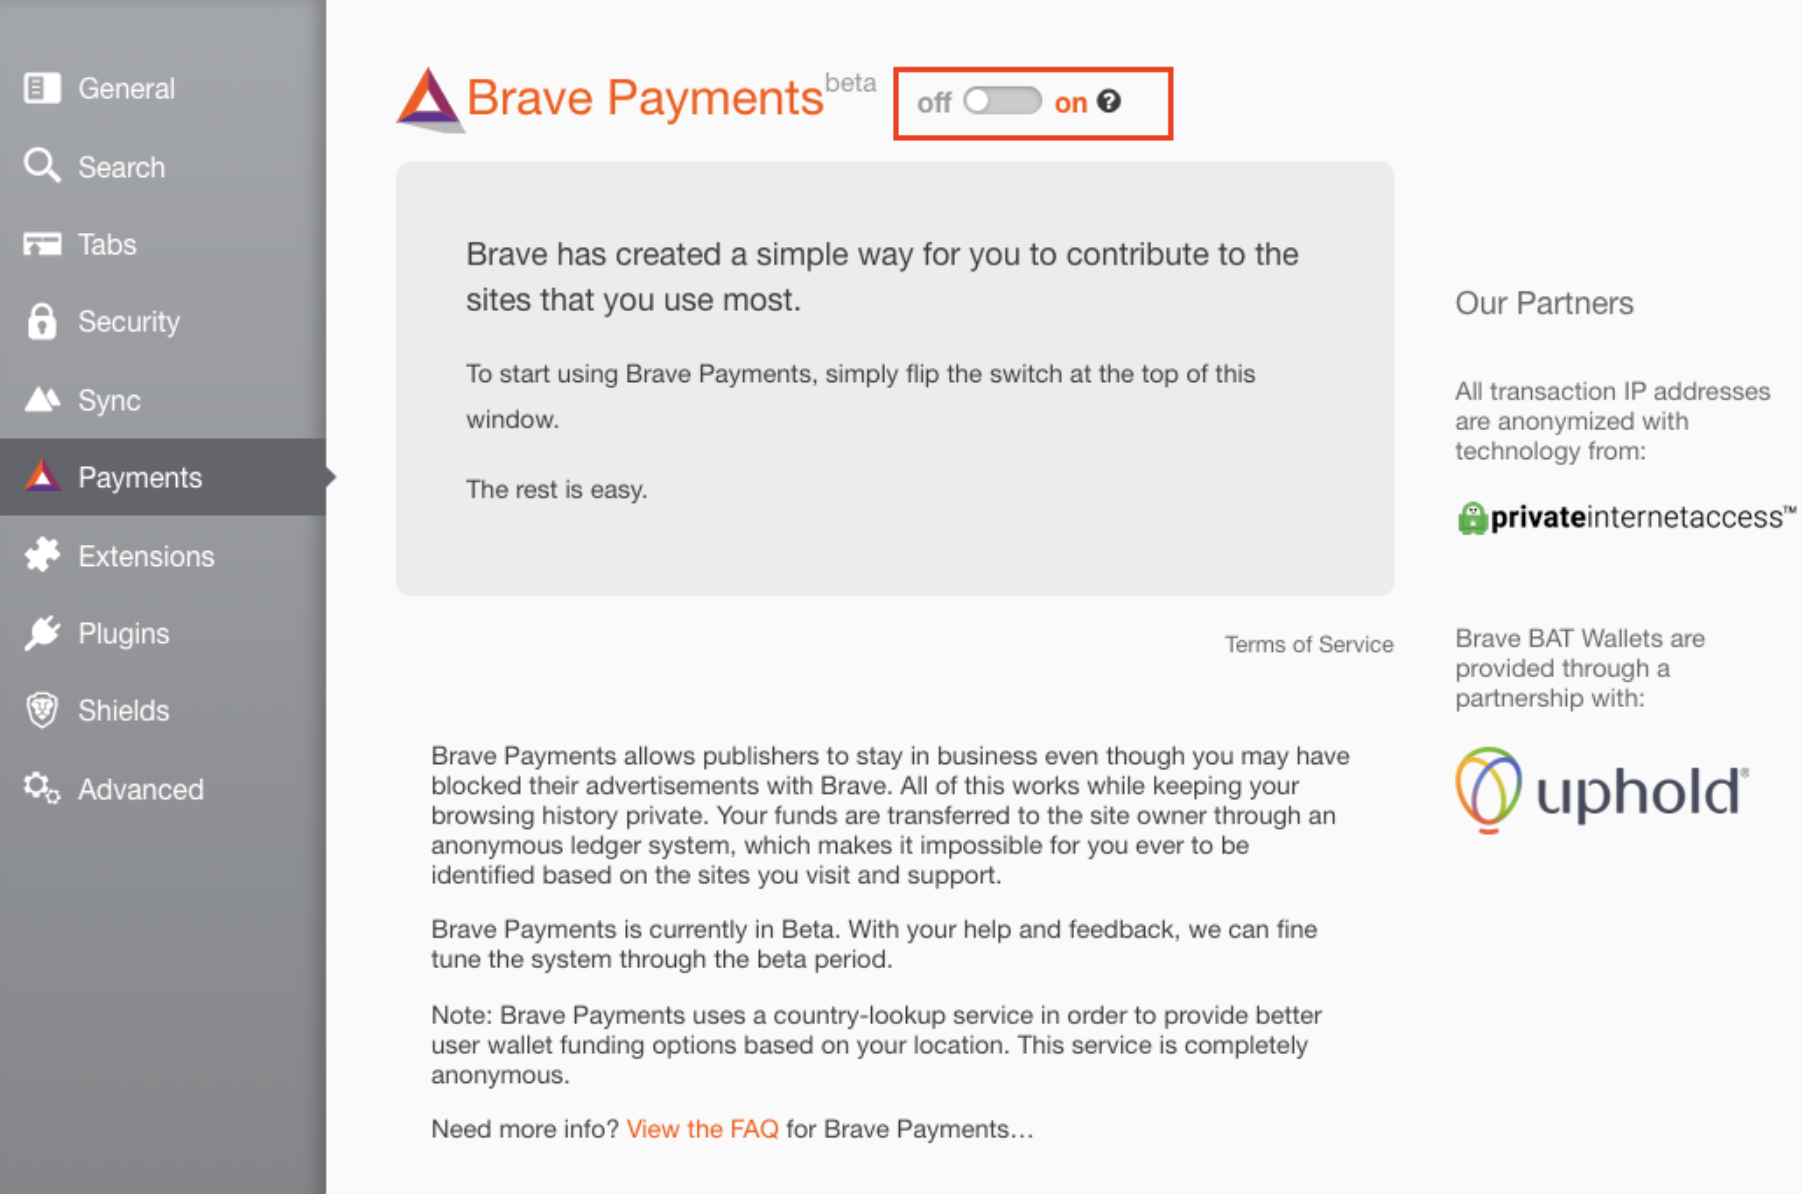 Brave Payments with BAT